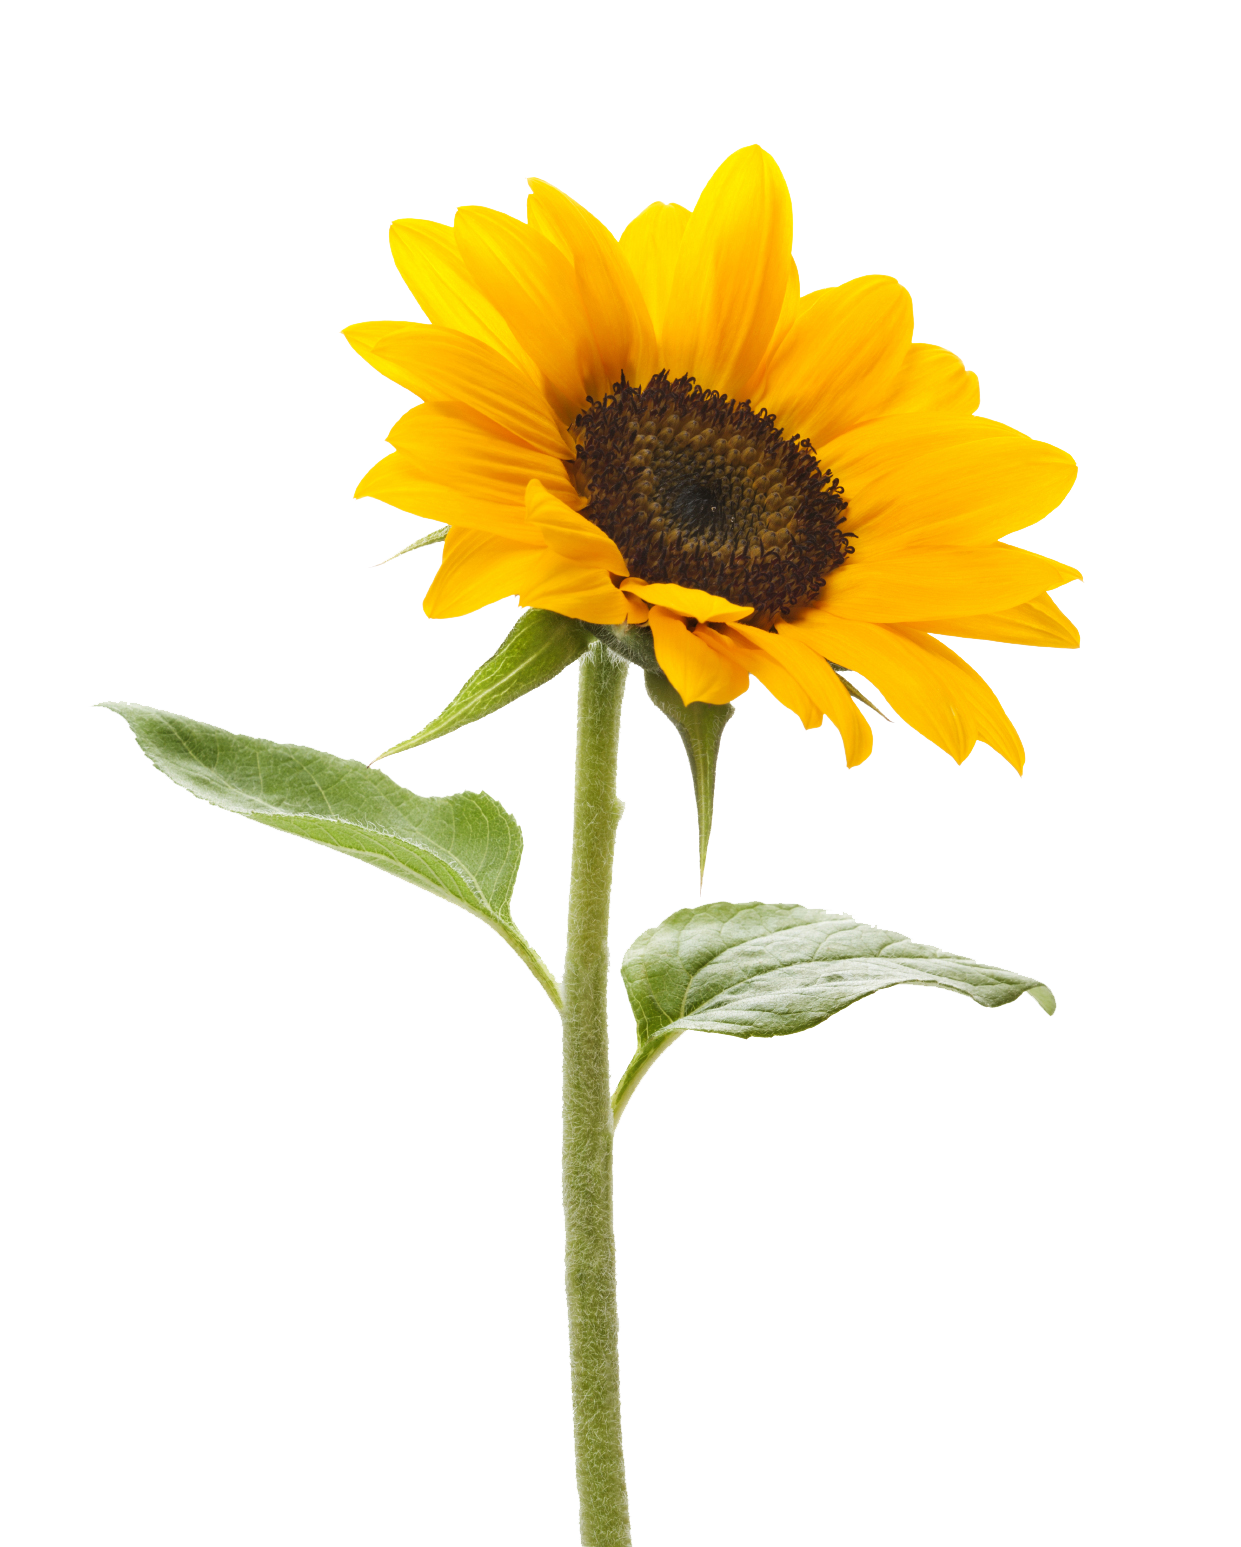 single sunflower png   free icons and png backgrounds, Beautiful flower